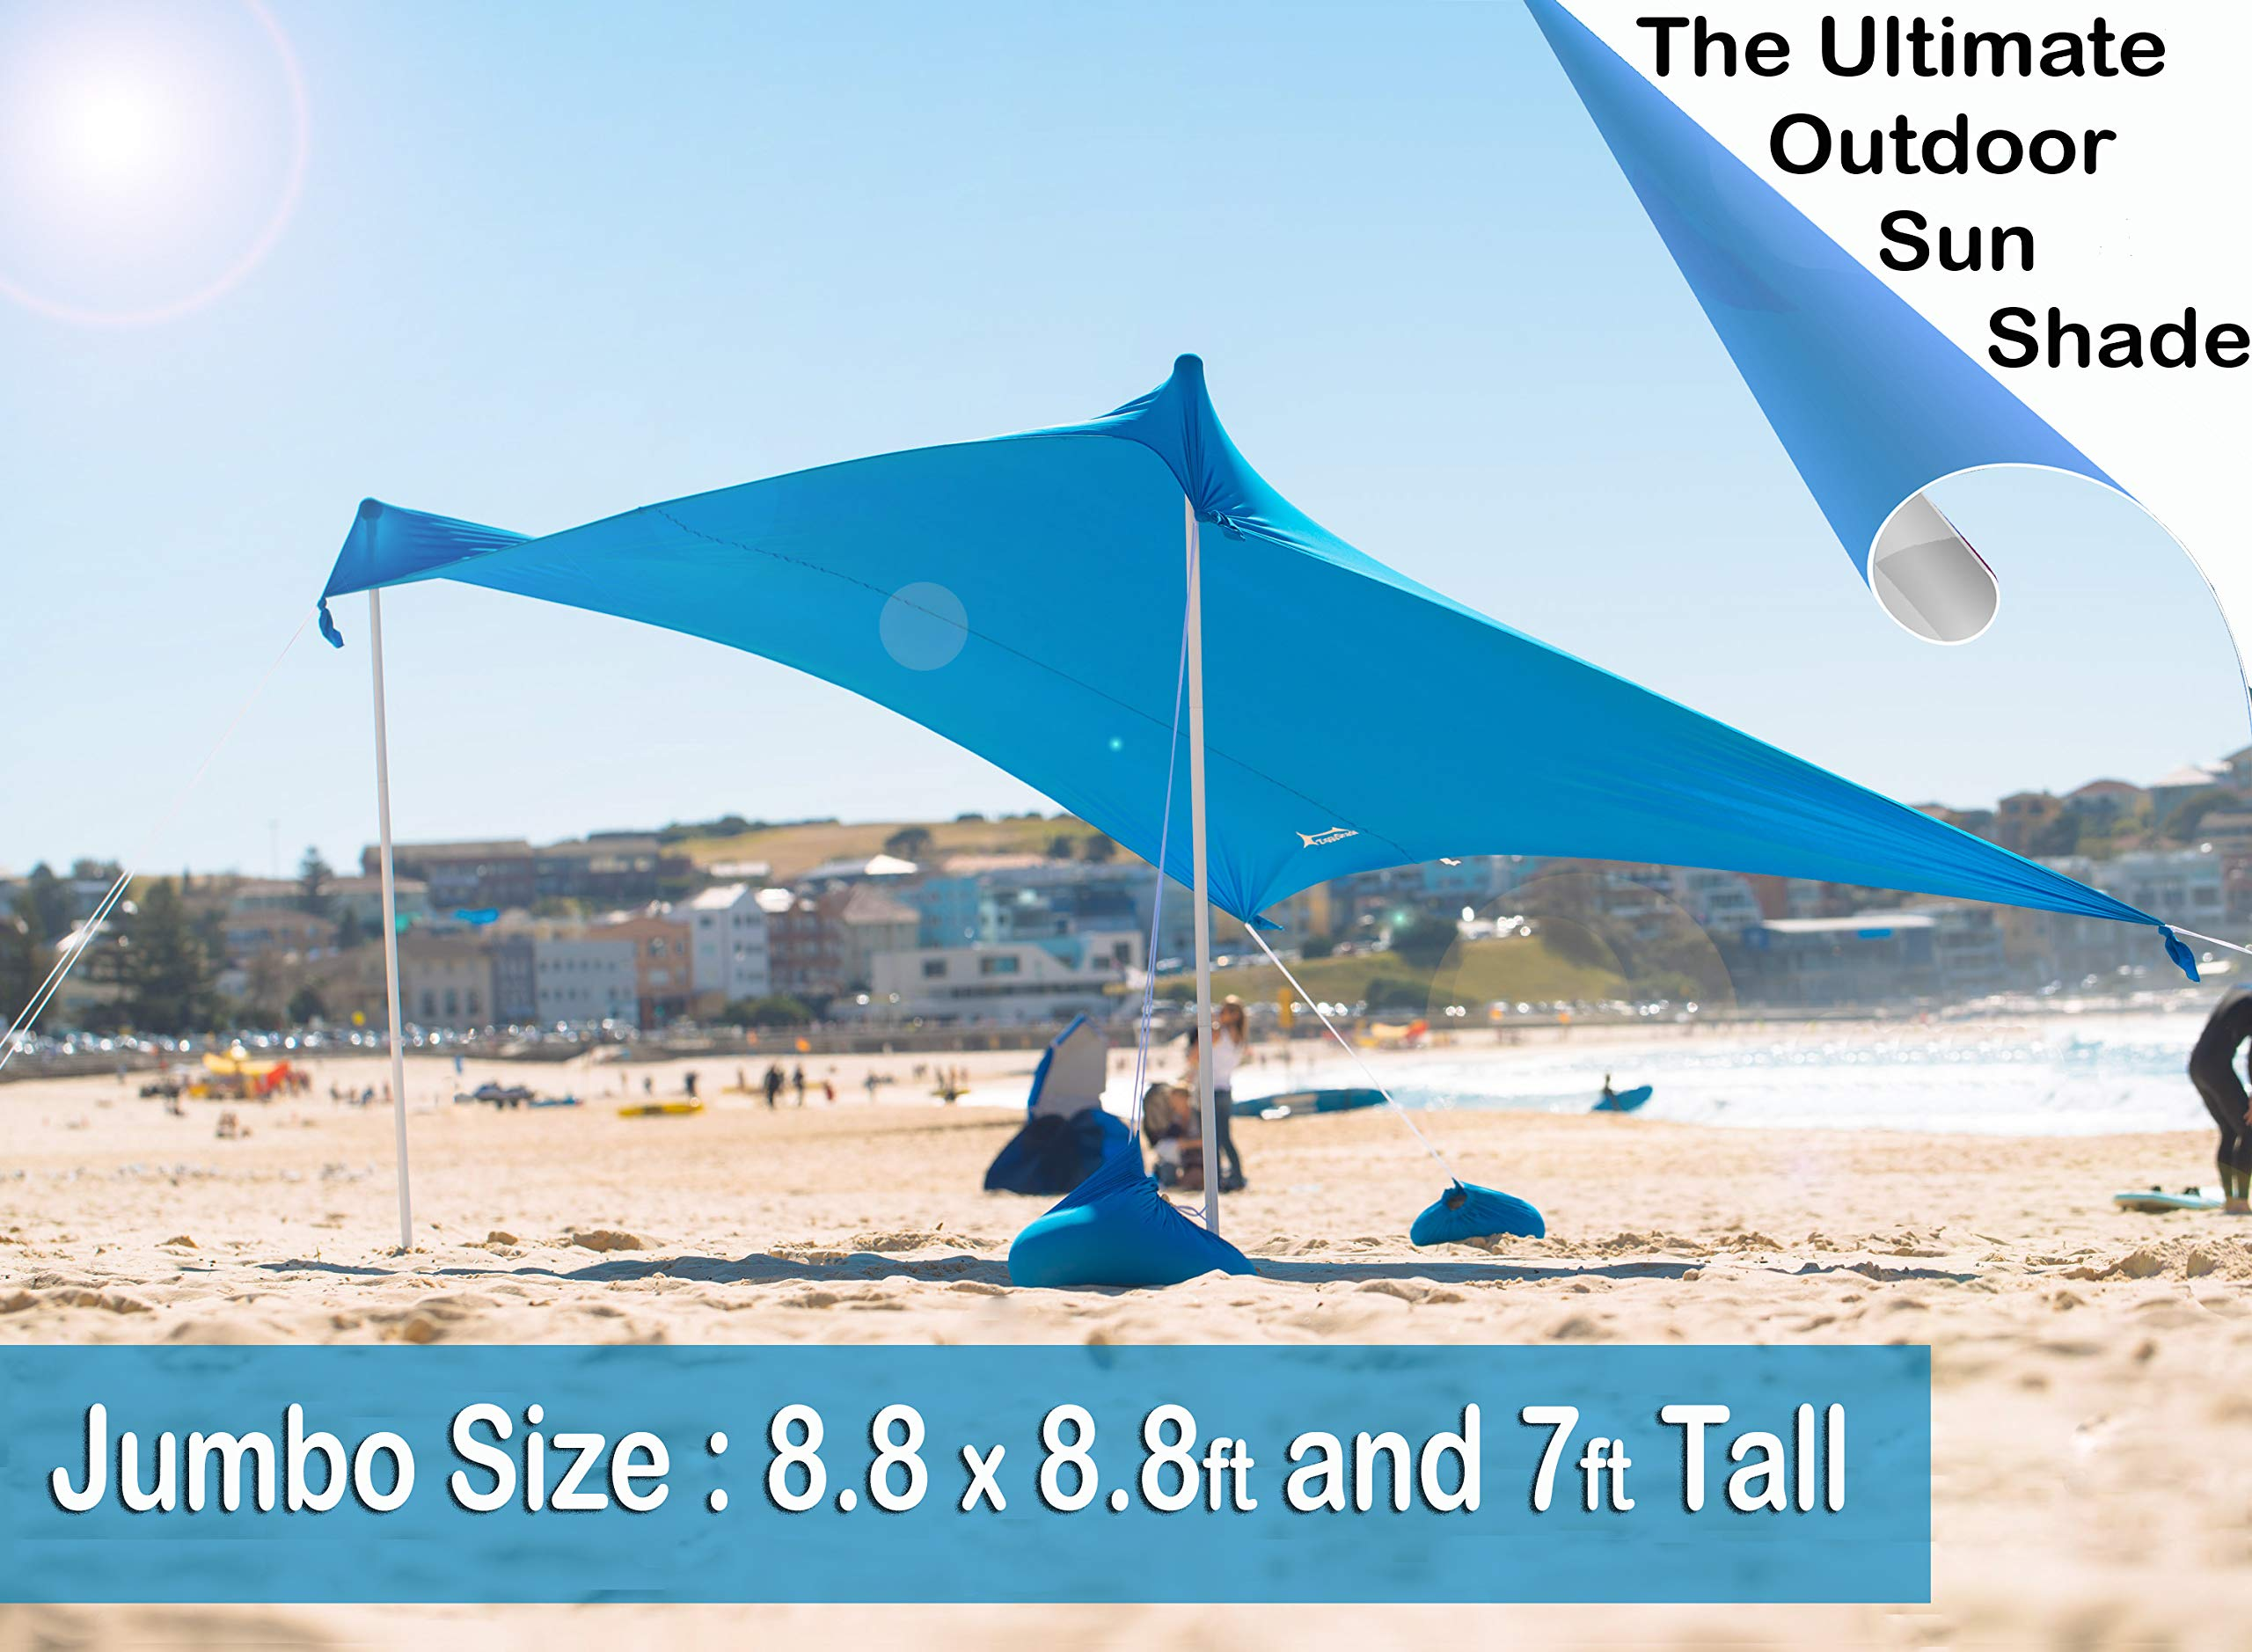 ZiggyShade Jumbo Beach Sunshade - Beach Tent + Sandbag Anchors & 4 Free Pegs - UPF50+ Quality Lycra Fabric - Perfect Sun Shelter for Kids & Family at The Beach, Parks, Camping & Outdoors (Sky Blue) by ZiggyShade